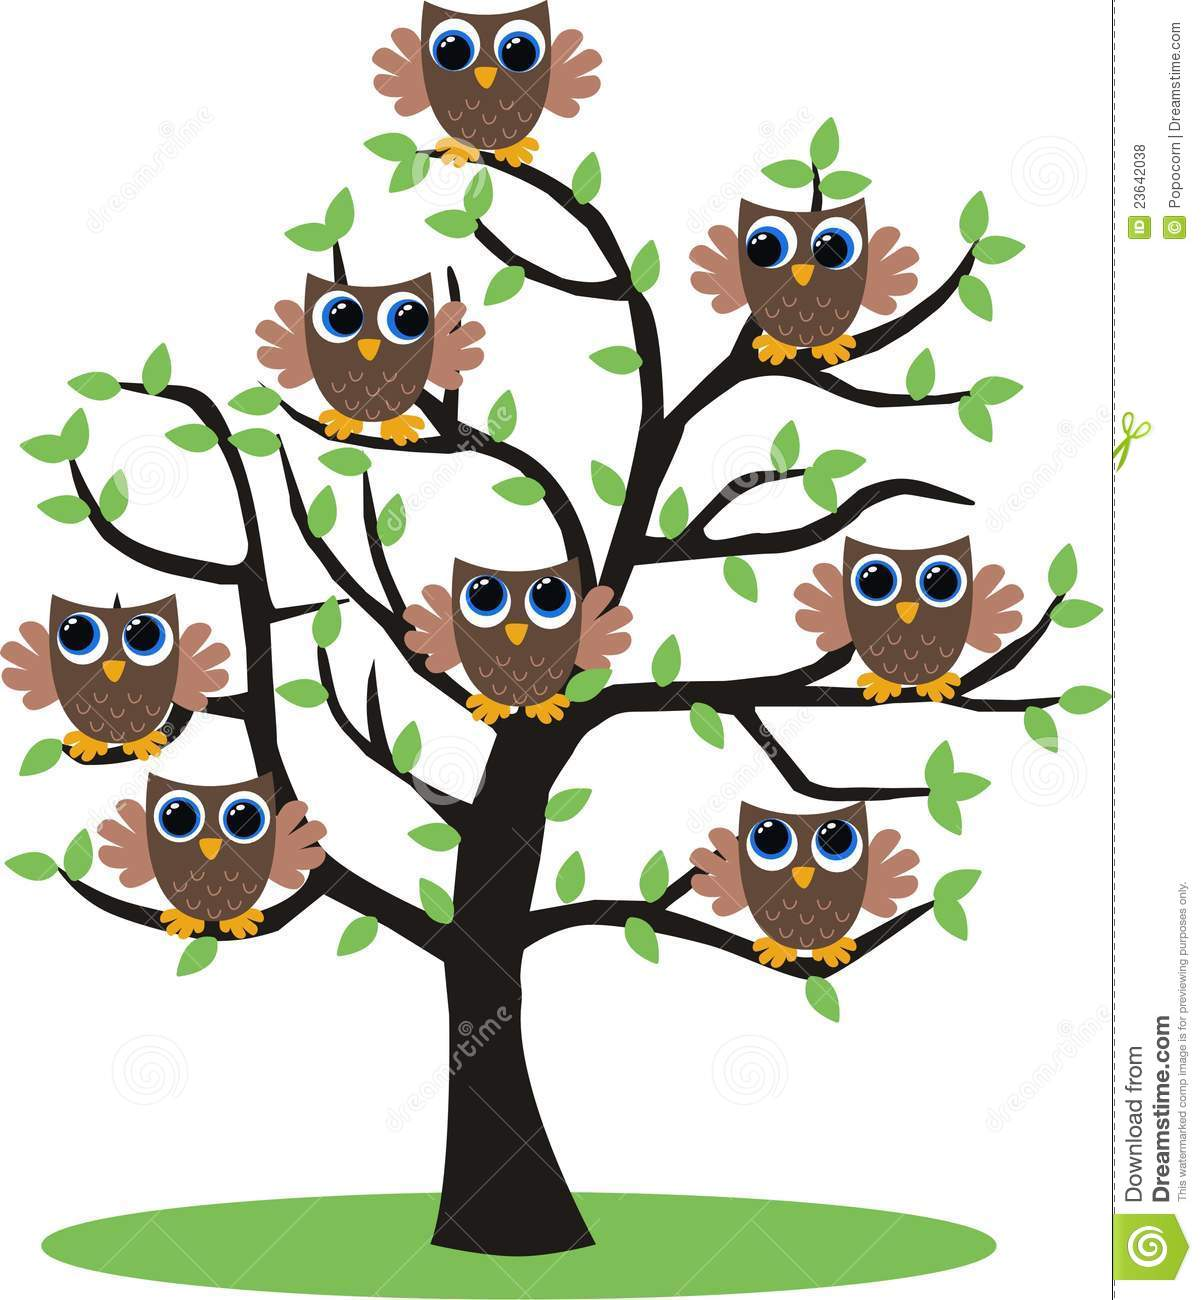 Bird And Tree Wall Stickers Owl Tree Royalty Free Stock Photos Image 23642038